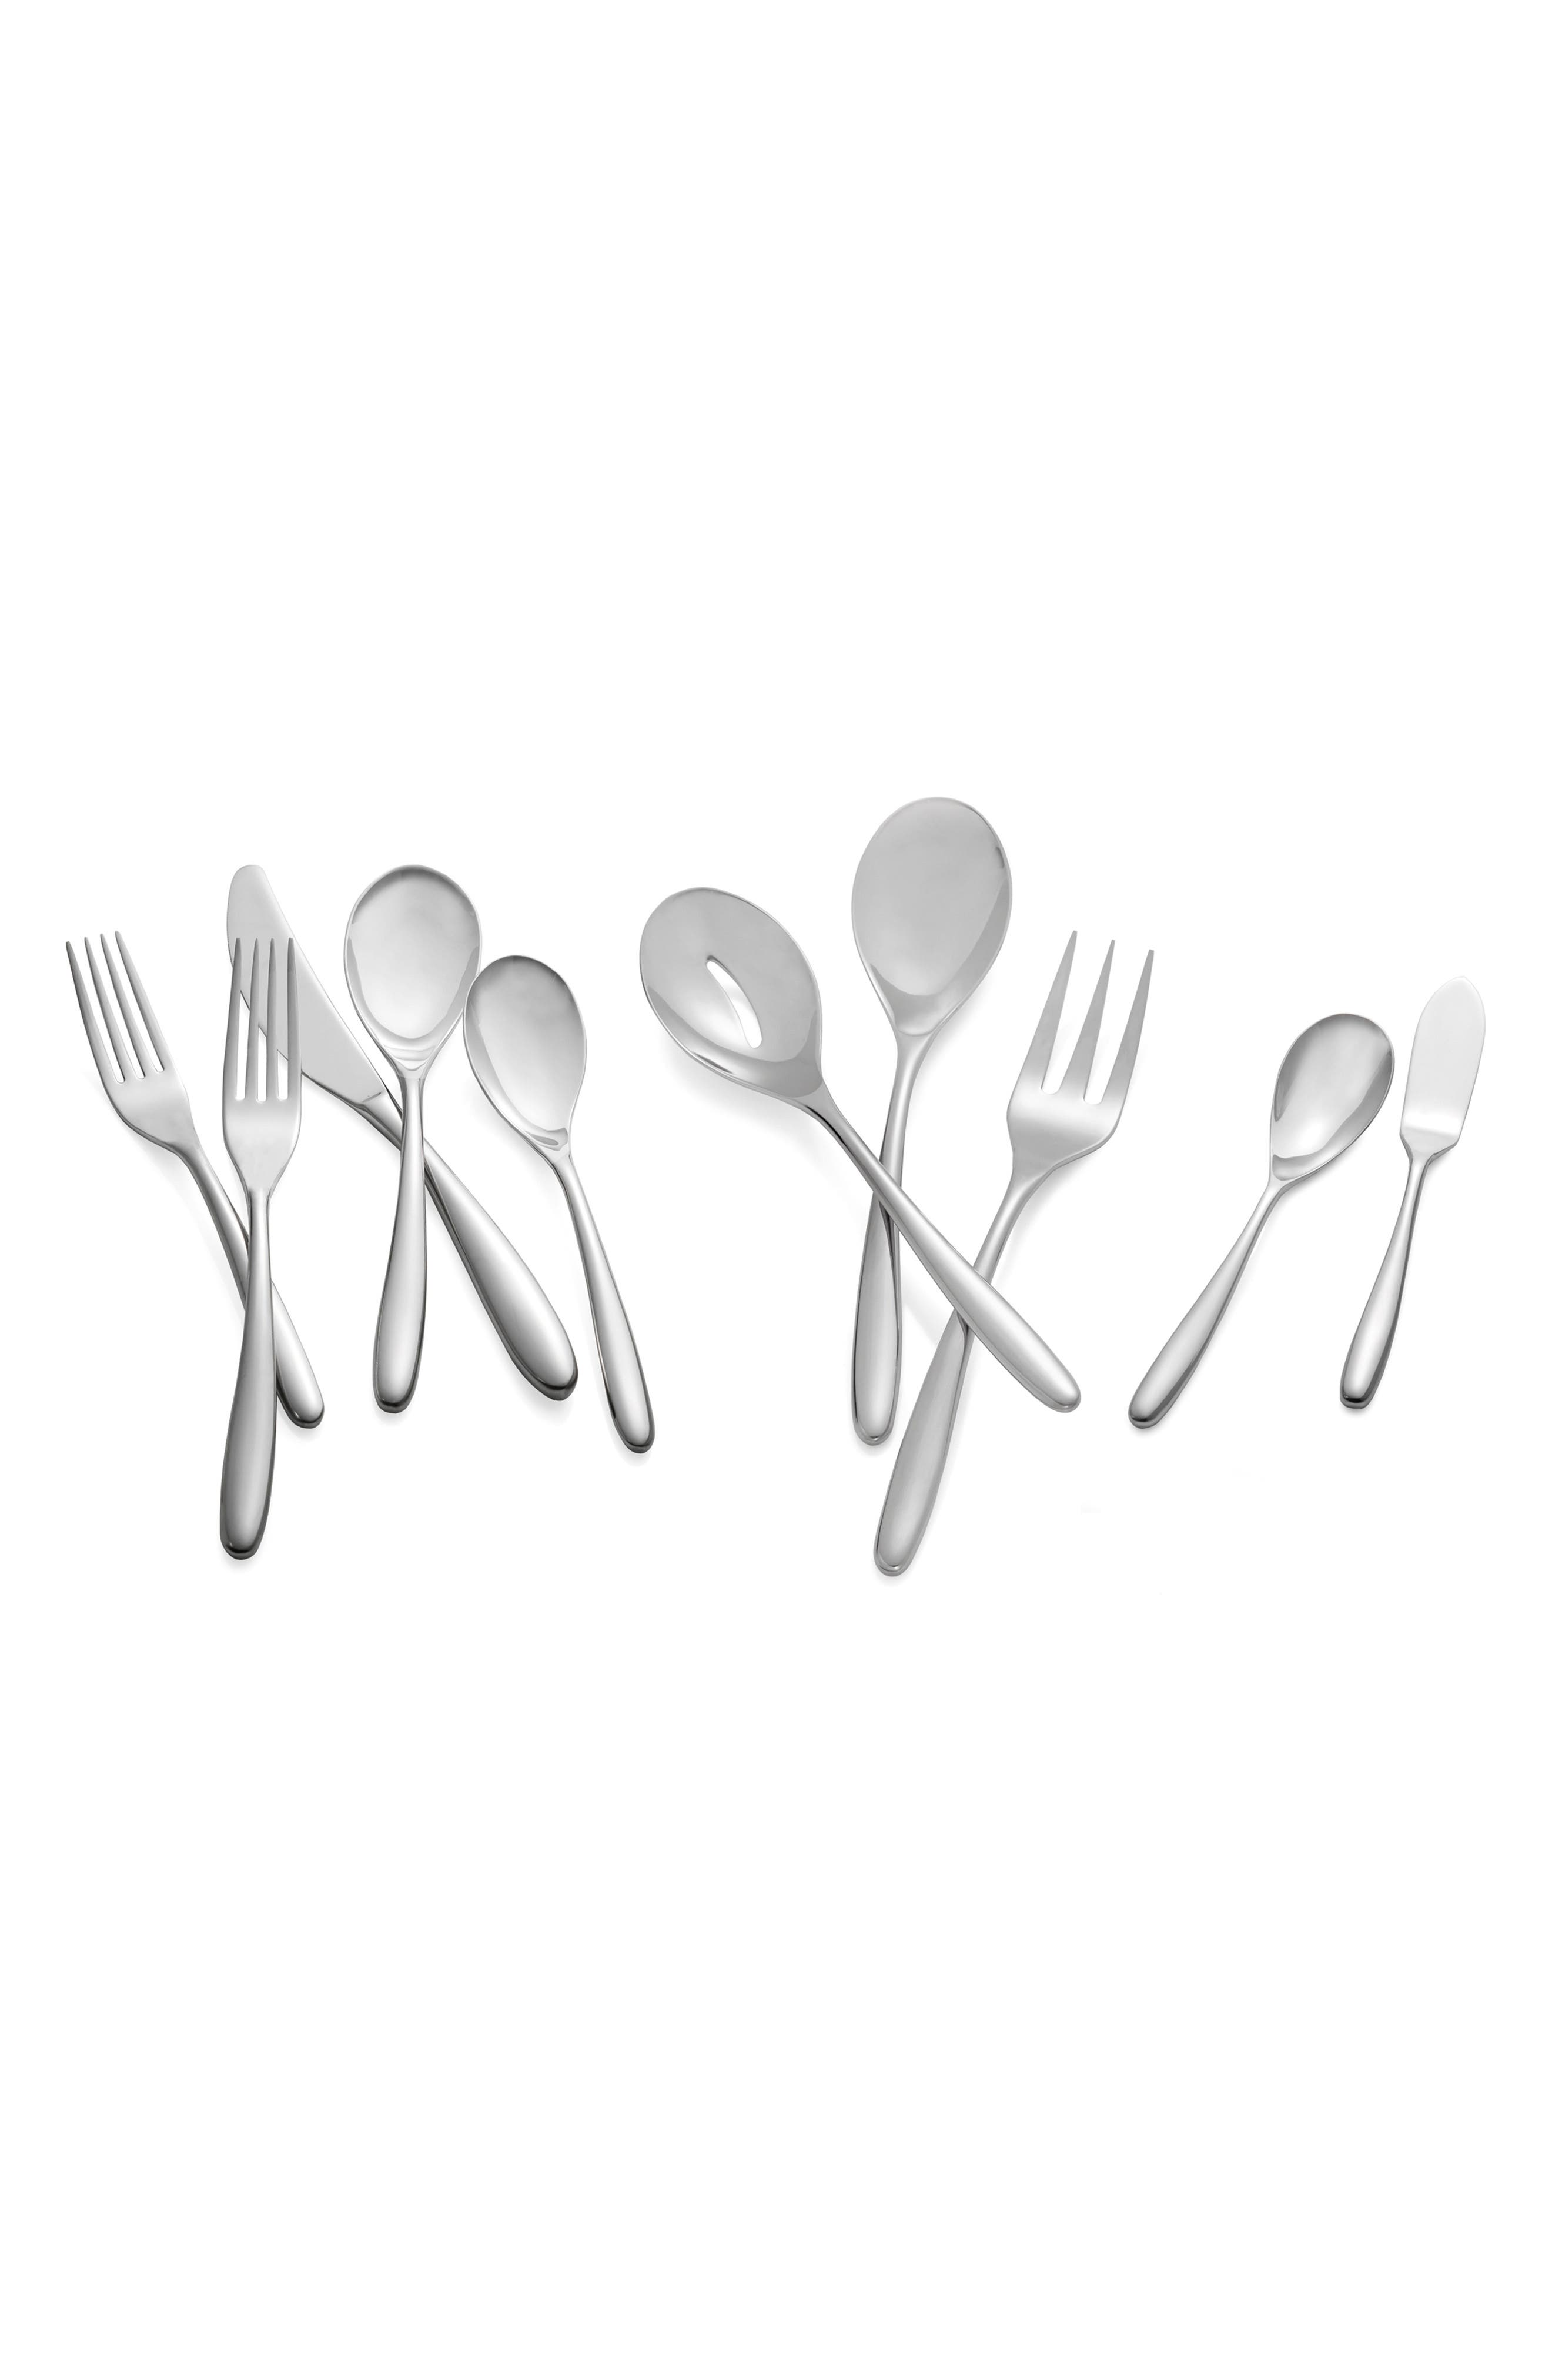 'Bend' 45-Piece Flatware Set,                             Alternate thumbnail 2, color,                             SILVER